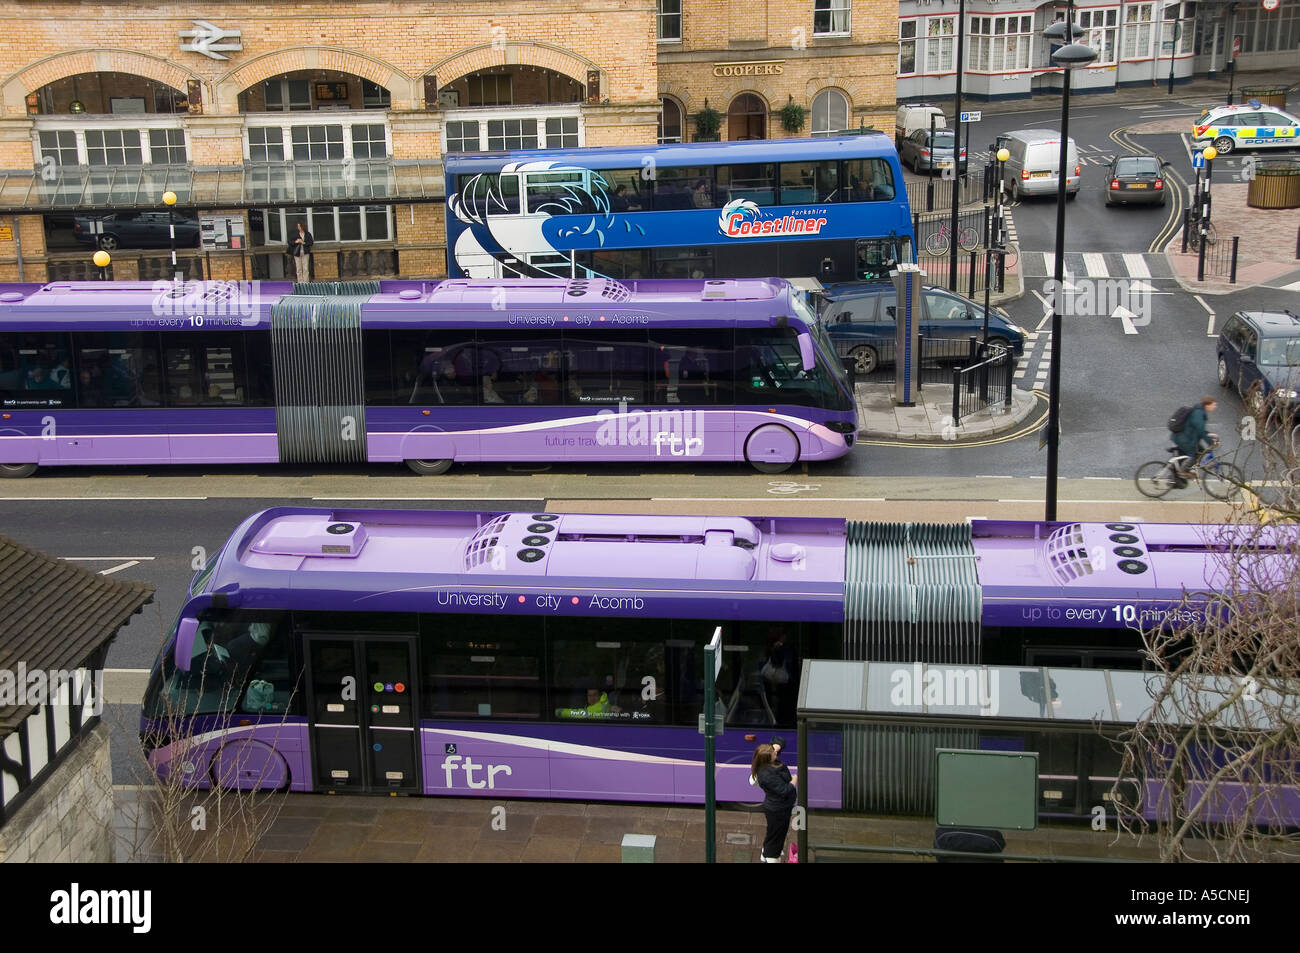 Ftr Future Travel First Bus At York Station York North Yorkshire England Uk United Kingdom Gb Great Britain